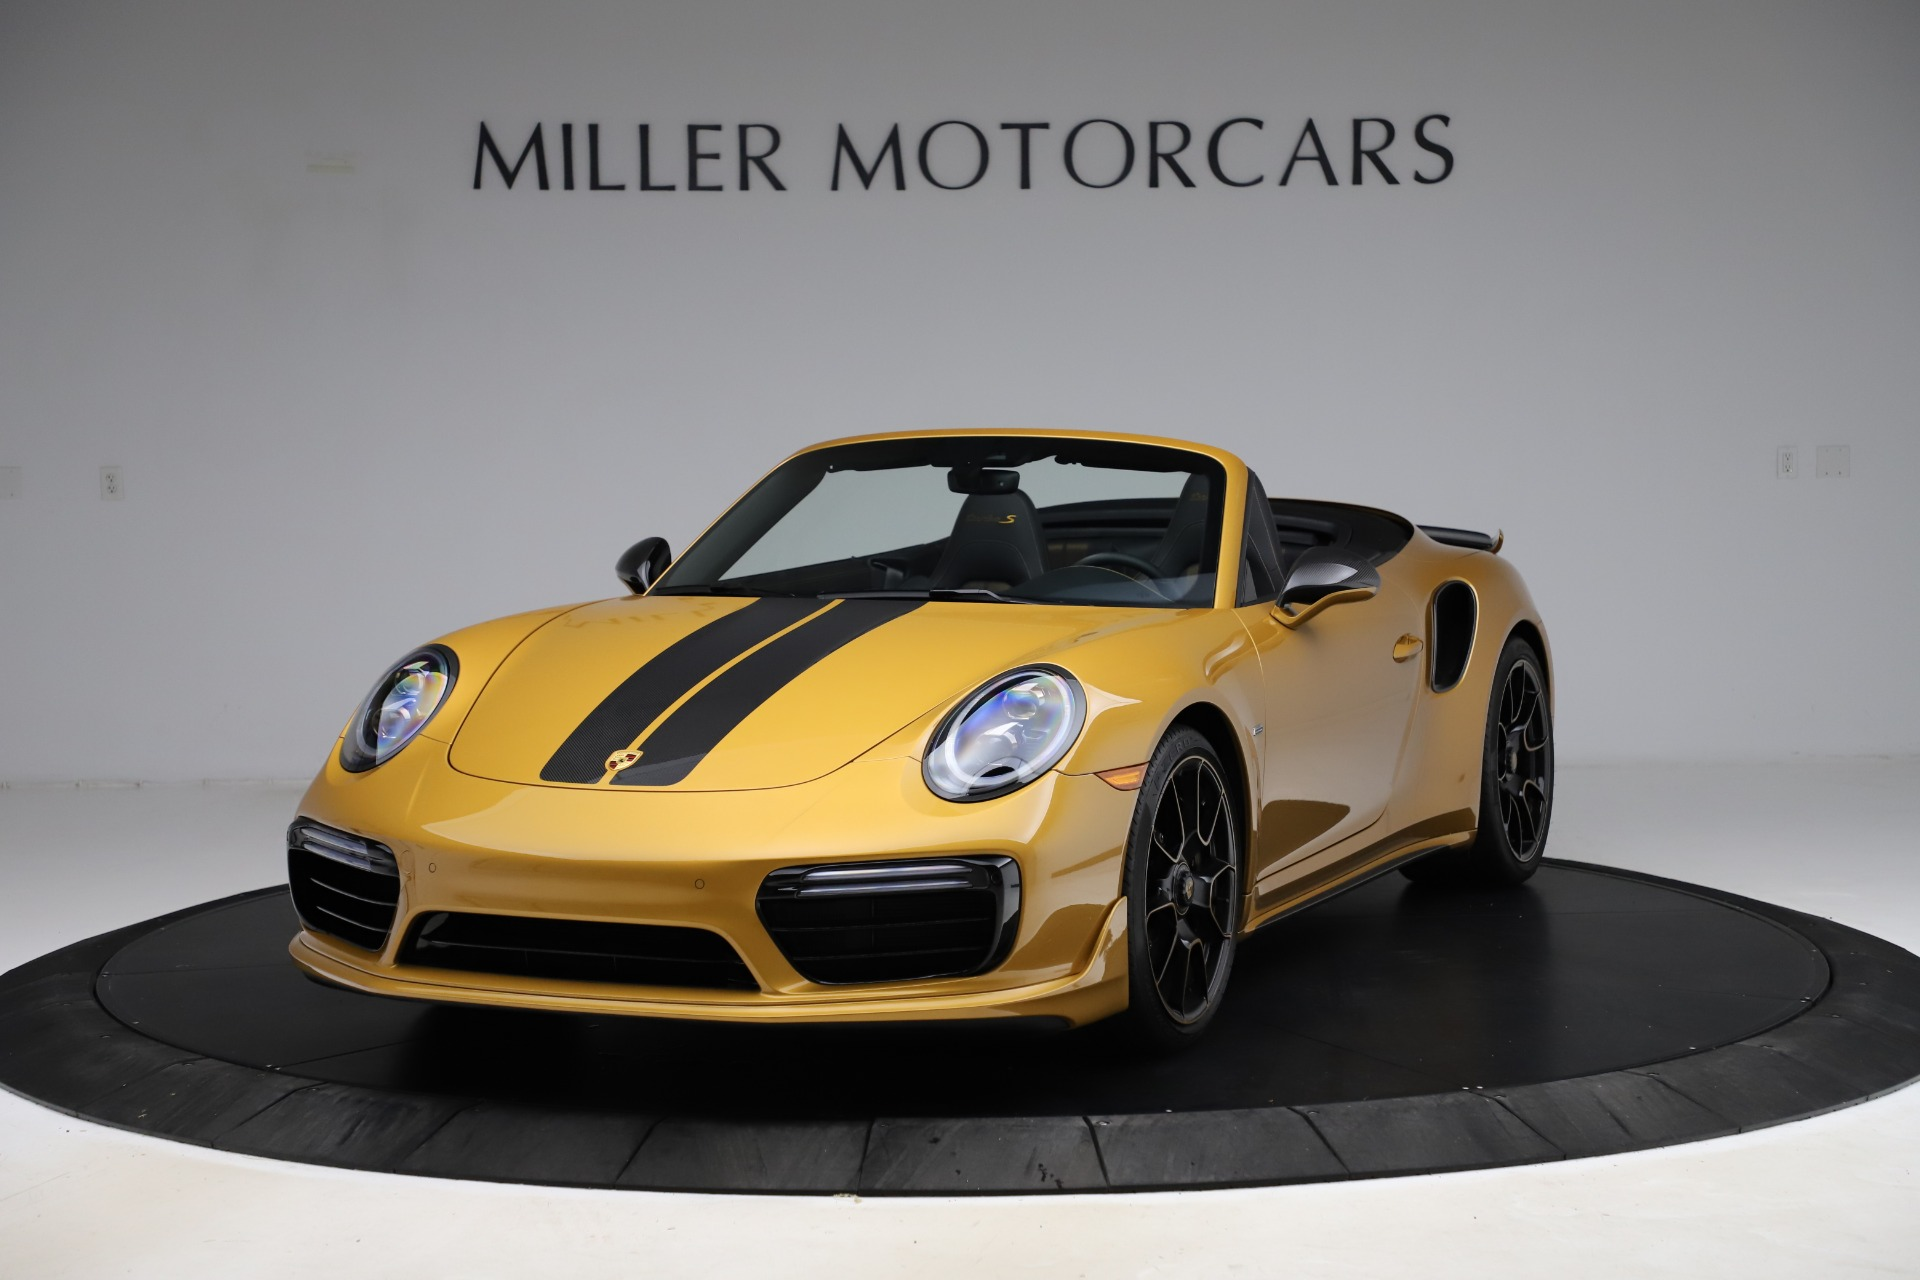 Used 2019 Porsche 911 Turbo S Exclusive for sale $249,900 at Pagani of Greenwich in Greenwich CT 06830 1